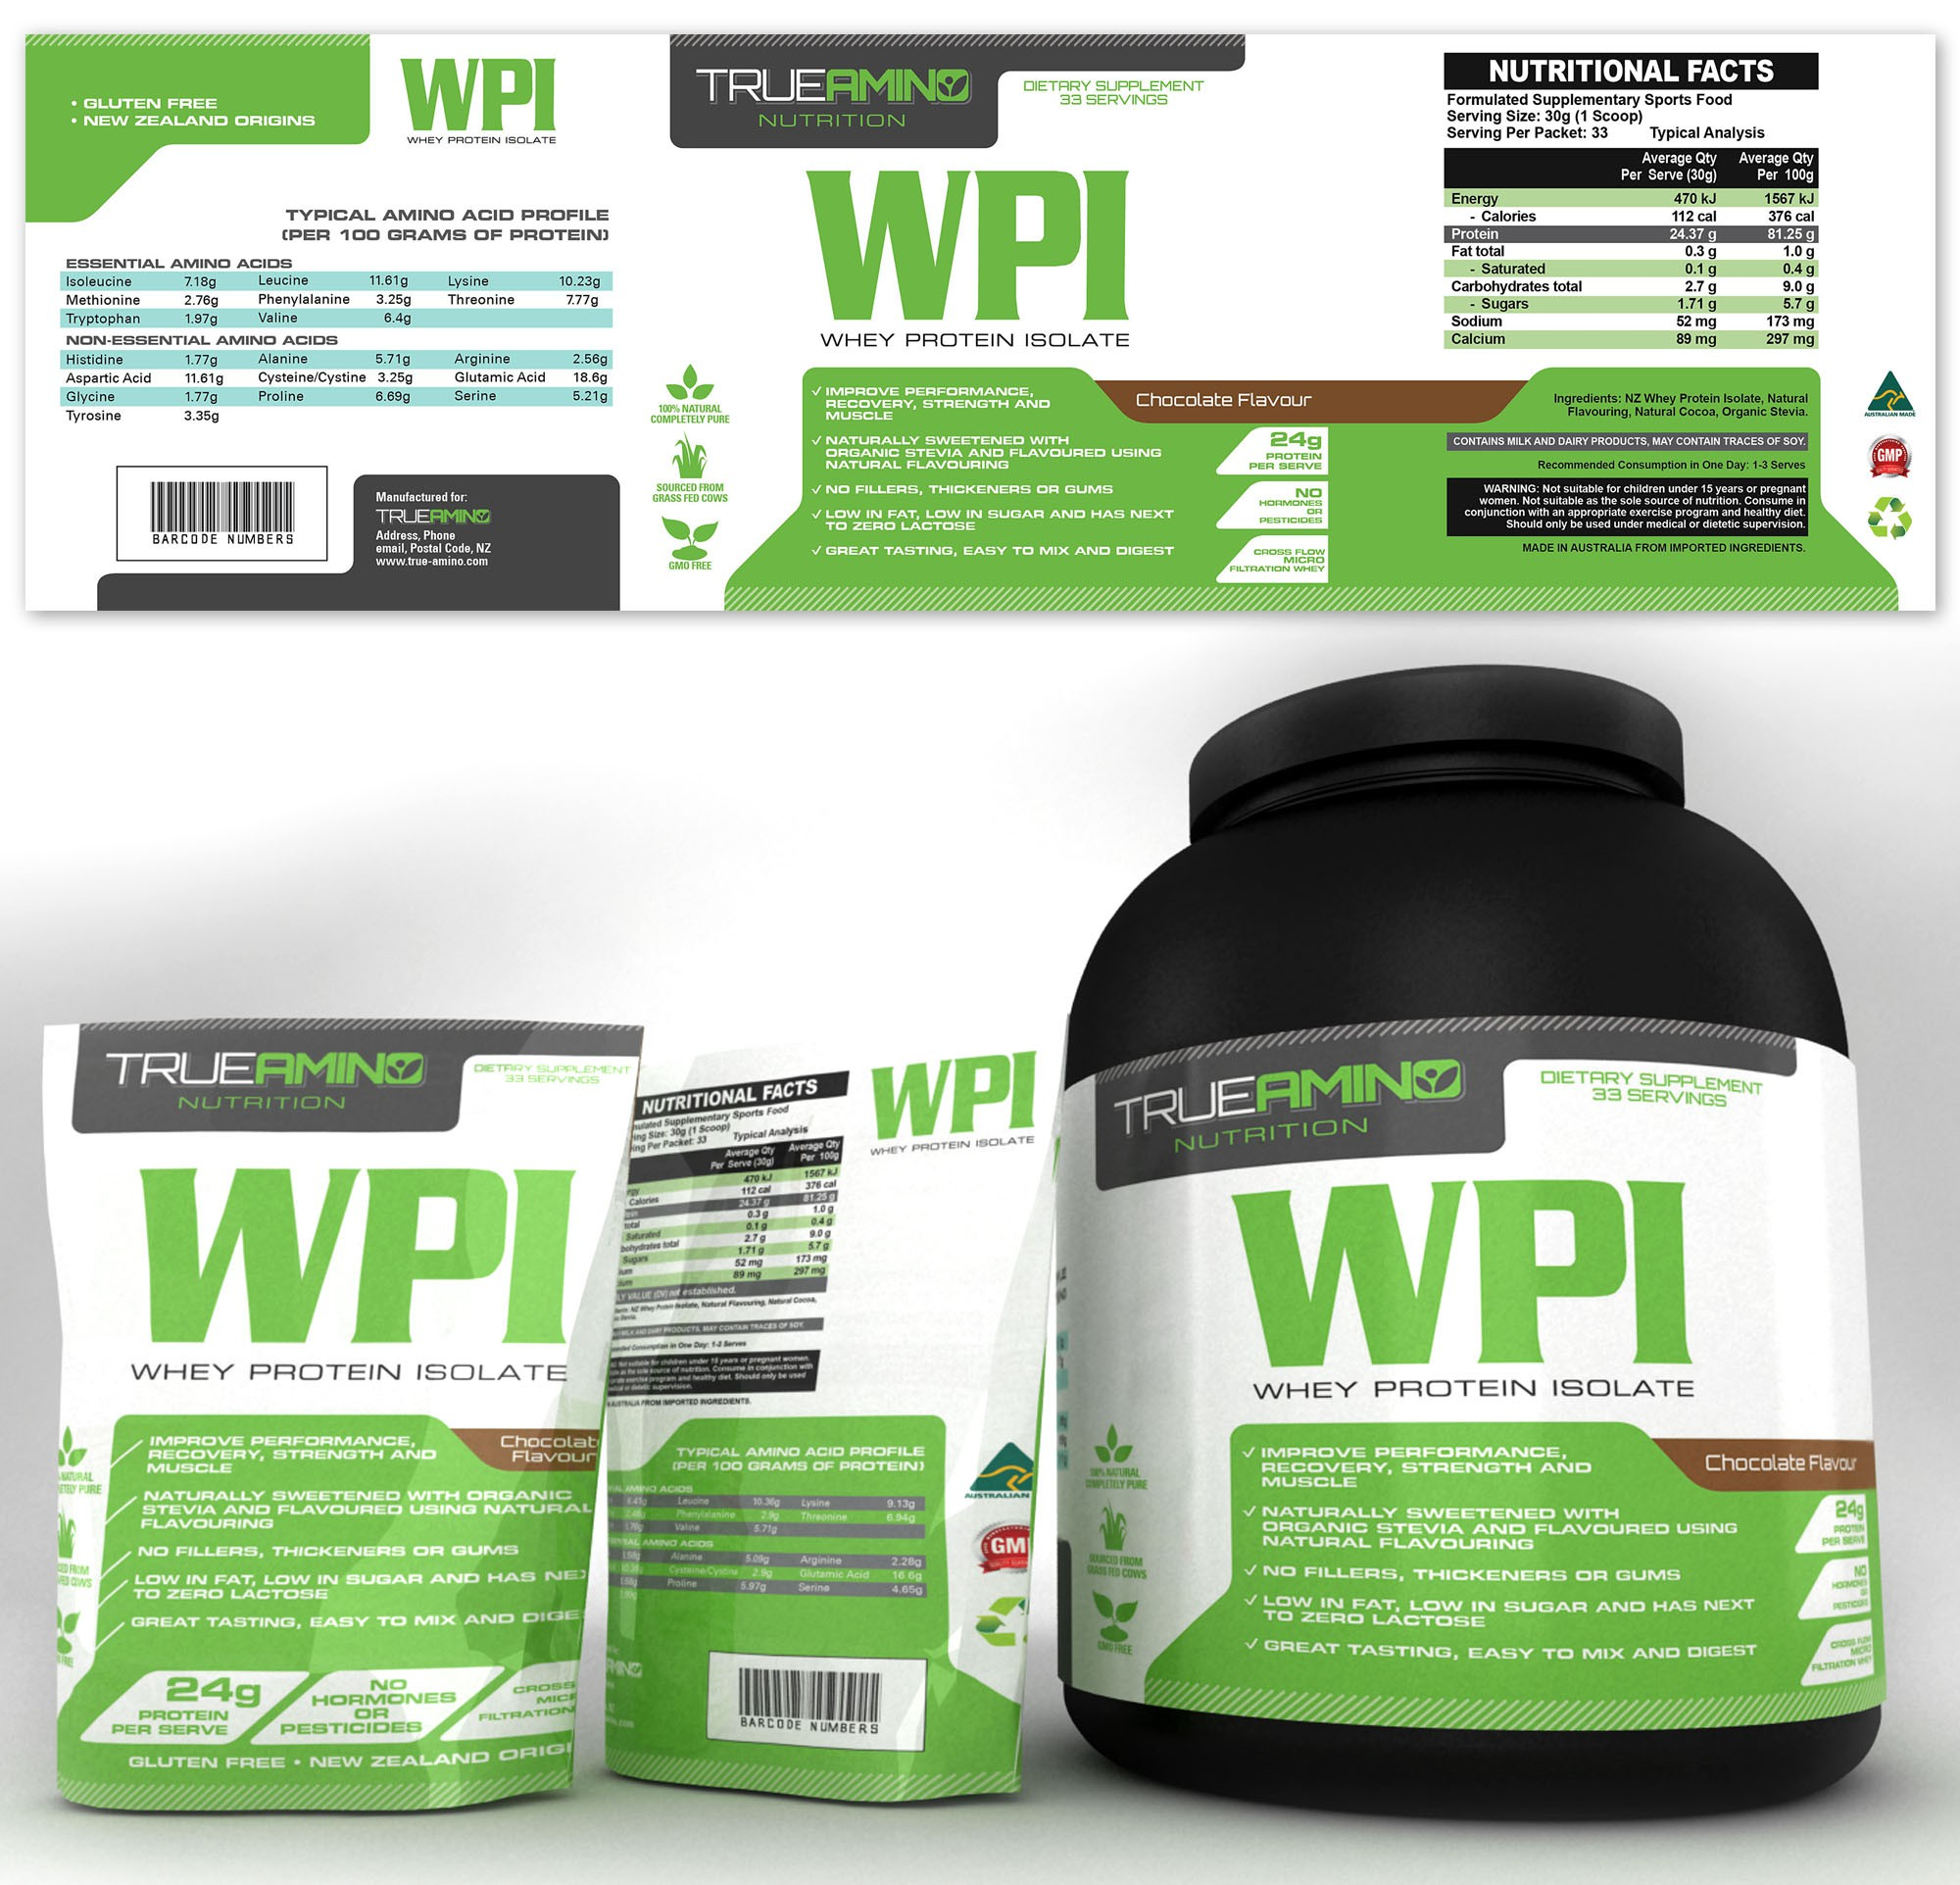 Create a logo and label for a new all natural whey protein supplement